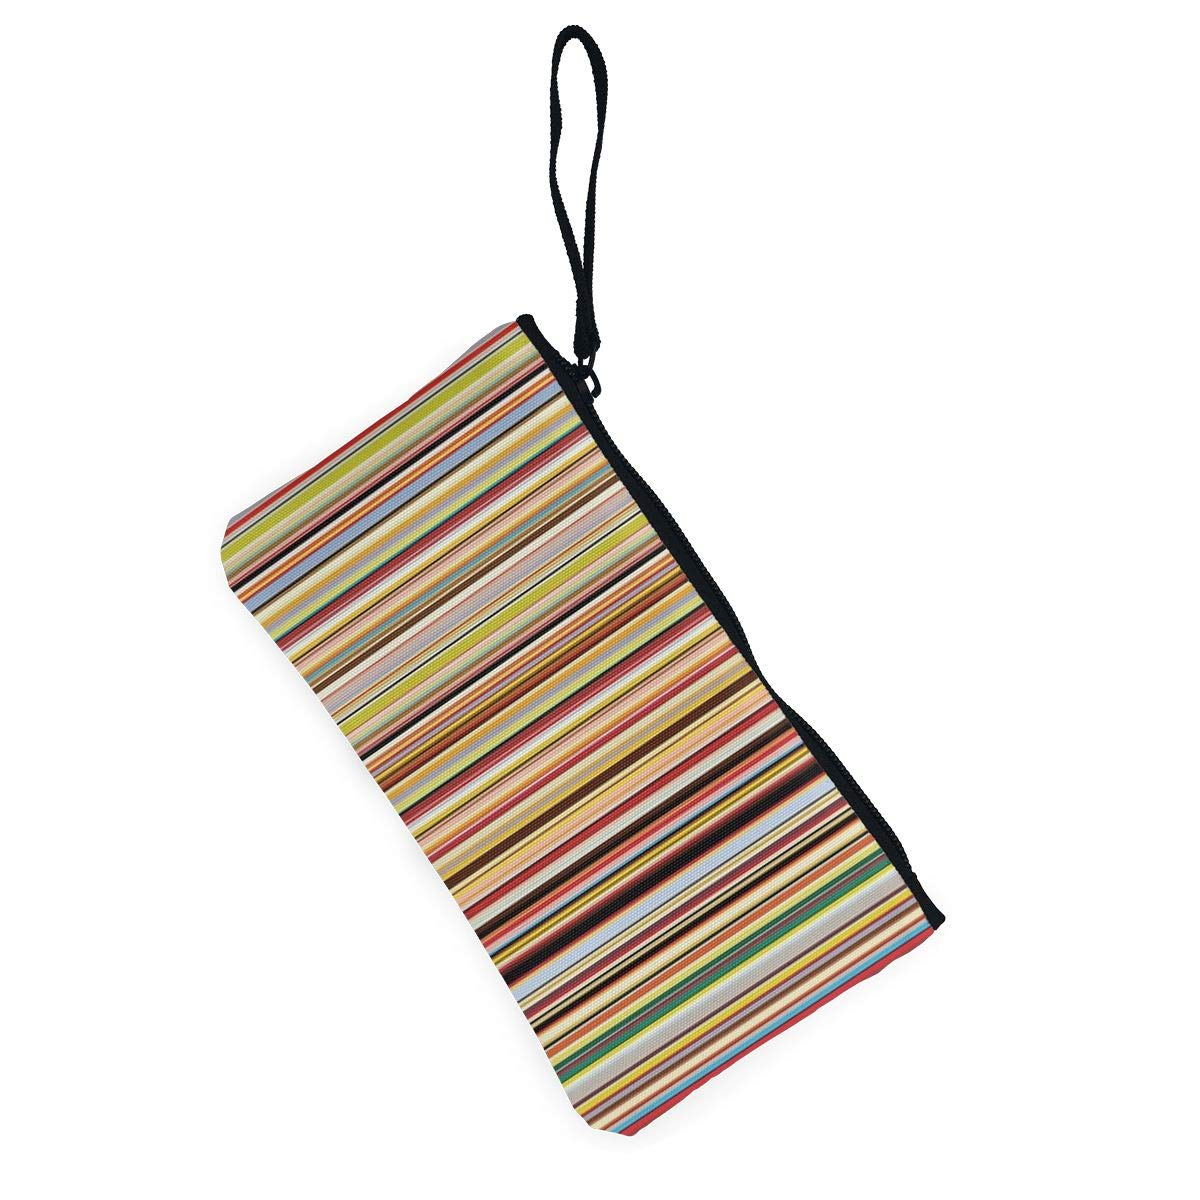 Yamini Old Skool Stripes Cute Looking Coin Purse Small and Exquisite Going Out to Carry Purse